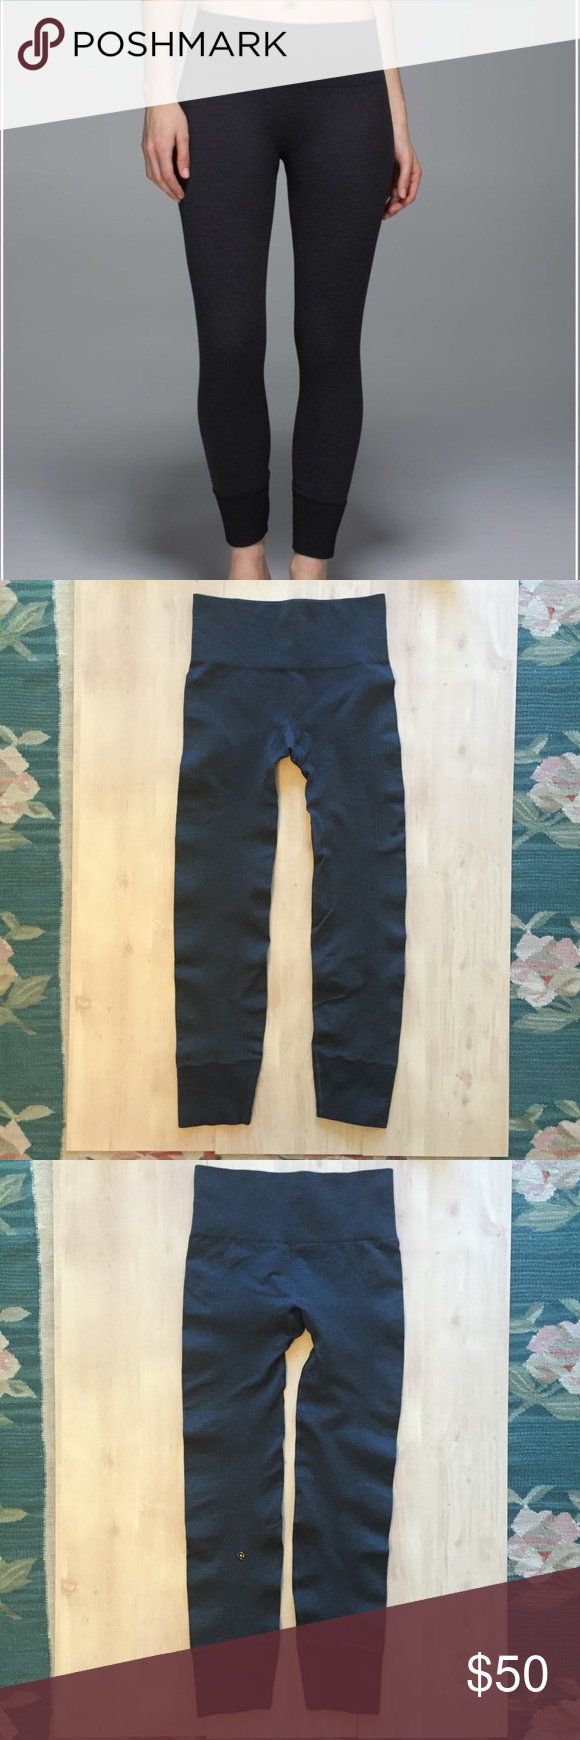 0f1895a3016189 Lululemon Ebb To Street Pant/Leggings Thick Sz 4 Lululemon Ebb To Street  Pant/ Leggings Dark Gray Sz 4 Pre owned no holes no stains EUC very thick  material ...